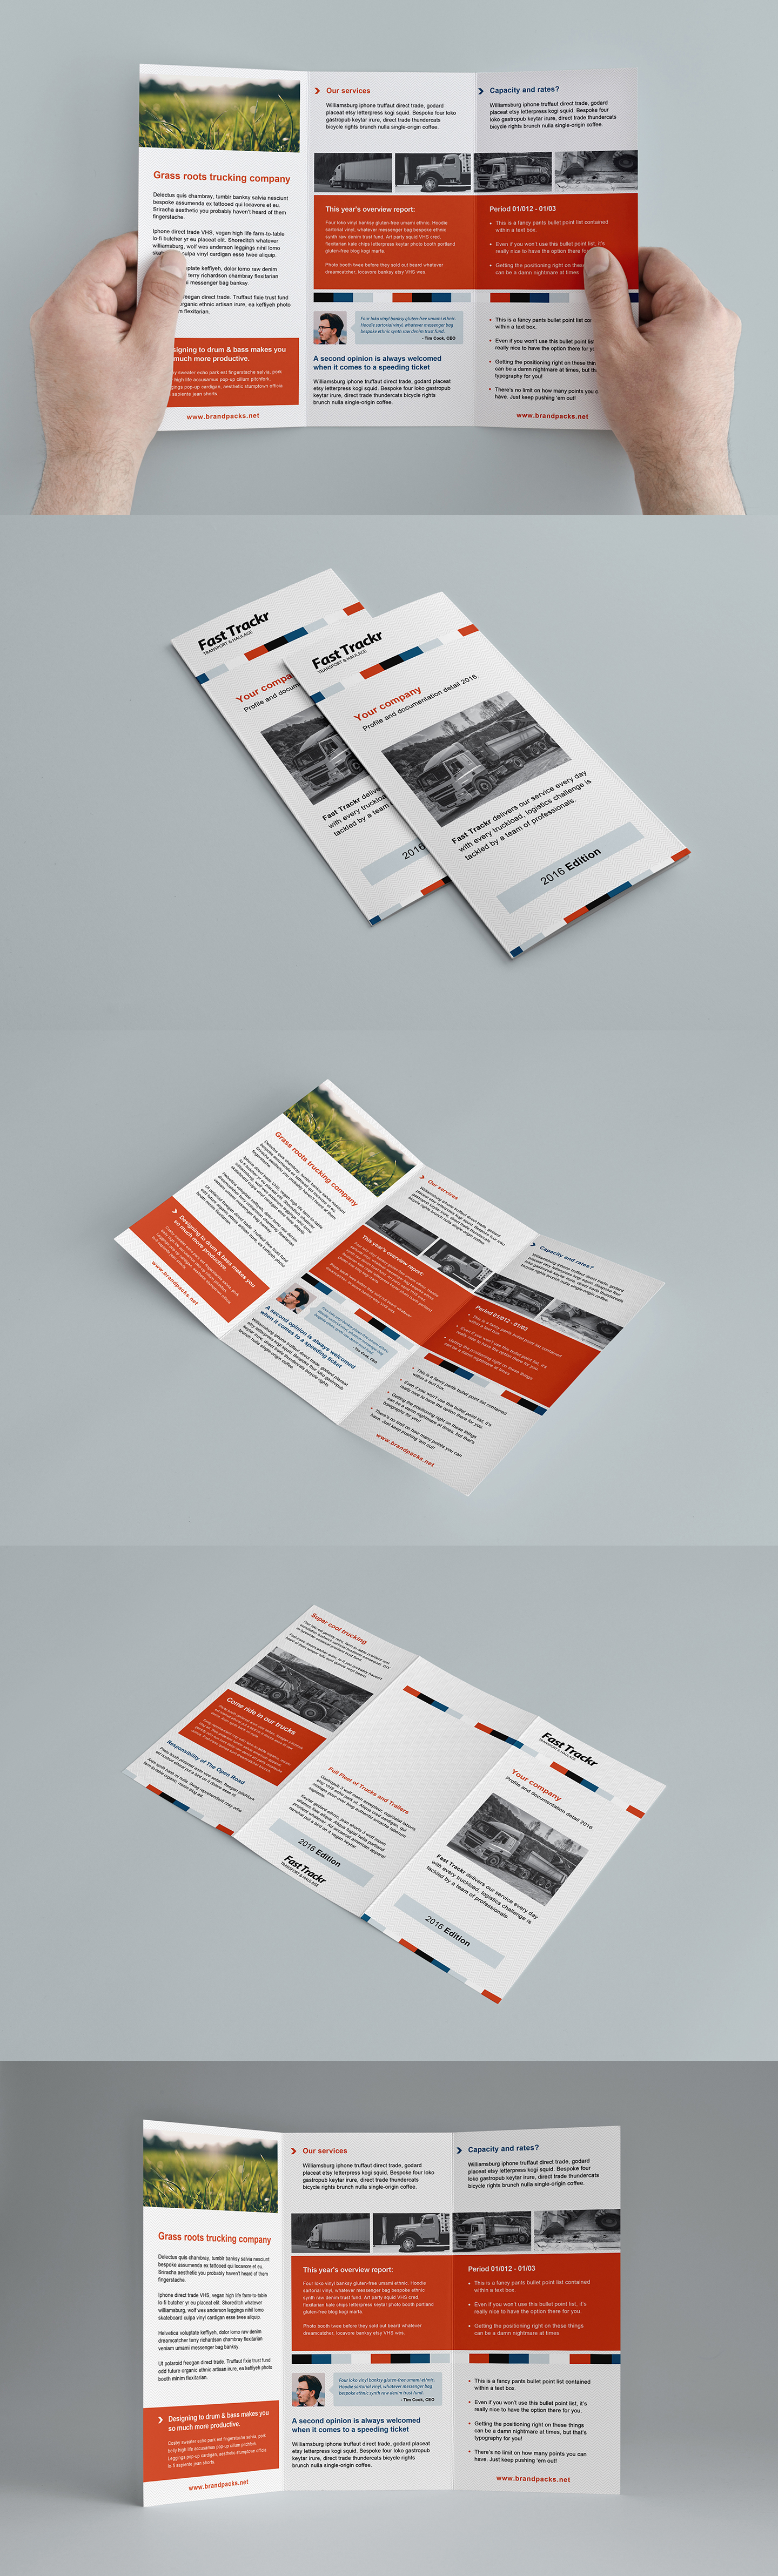 Free Trifold Brochure Template for Adobe Photoshop   Illustrator     Free Trifold Brochure Template for Adobe Photoshop   Illustrator  PSD   Photoshop  Vector  Illustrator  AdobeCC  CMYK  BrandPacks